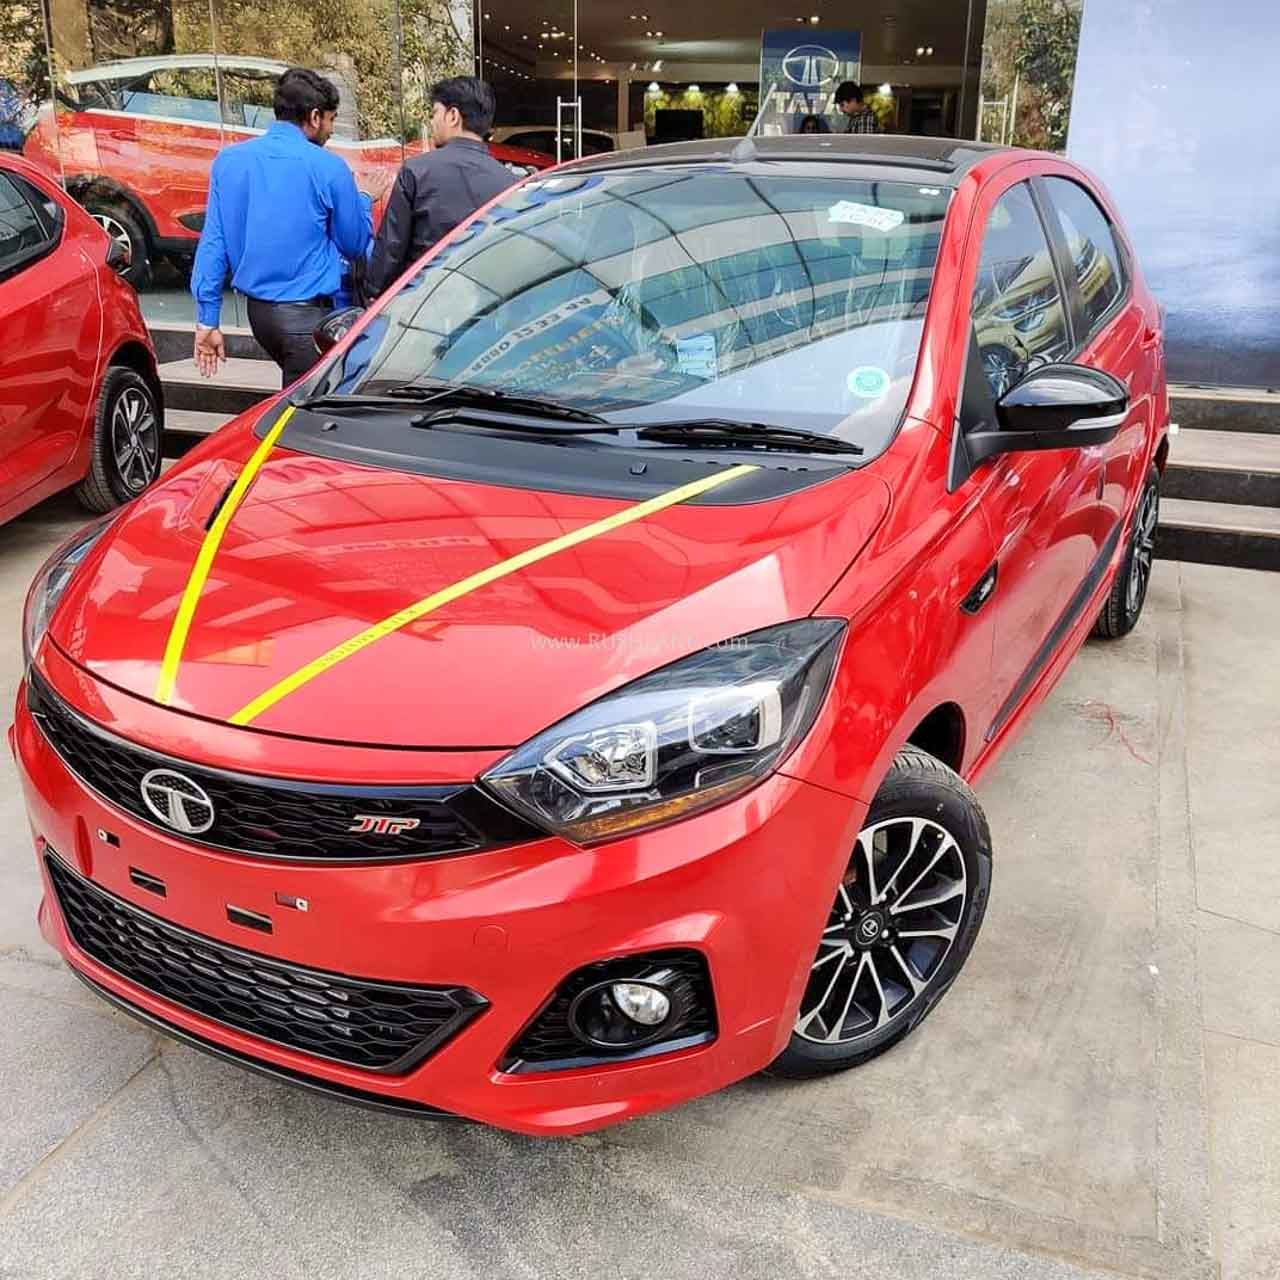 Tata JTP performance brand discontinued due to low demand